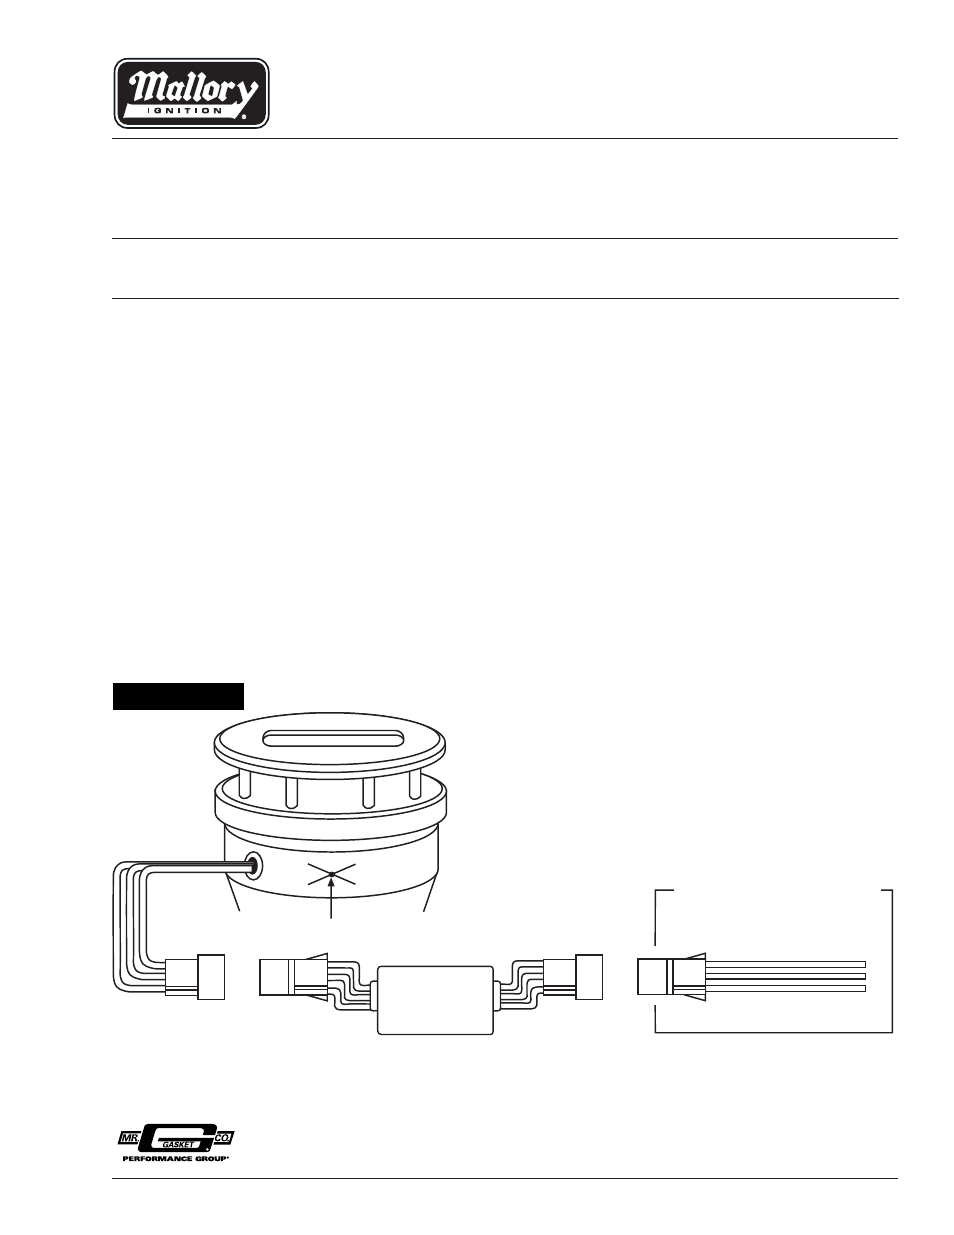 Denso Alternator Wiring Harness - Wiring Diagram Online on denso o2 sensor wiring, vw wiring schematic, denso alternator dimensions, denso 3 wire altenator, denso alternator plug, ignition switch wiring schematic, denso 101211 1420 suzuki wiring-diagram, alternator circuit schematic, denso alternator diagram, denso voltage regulator,